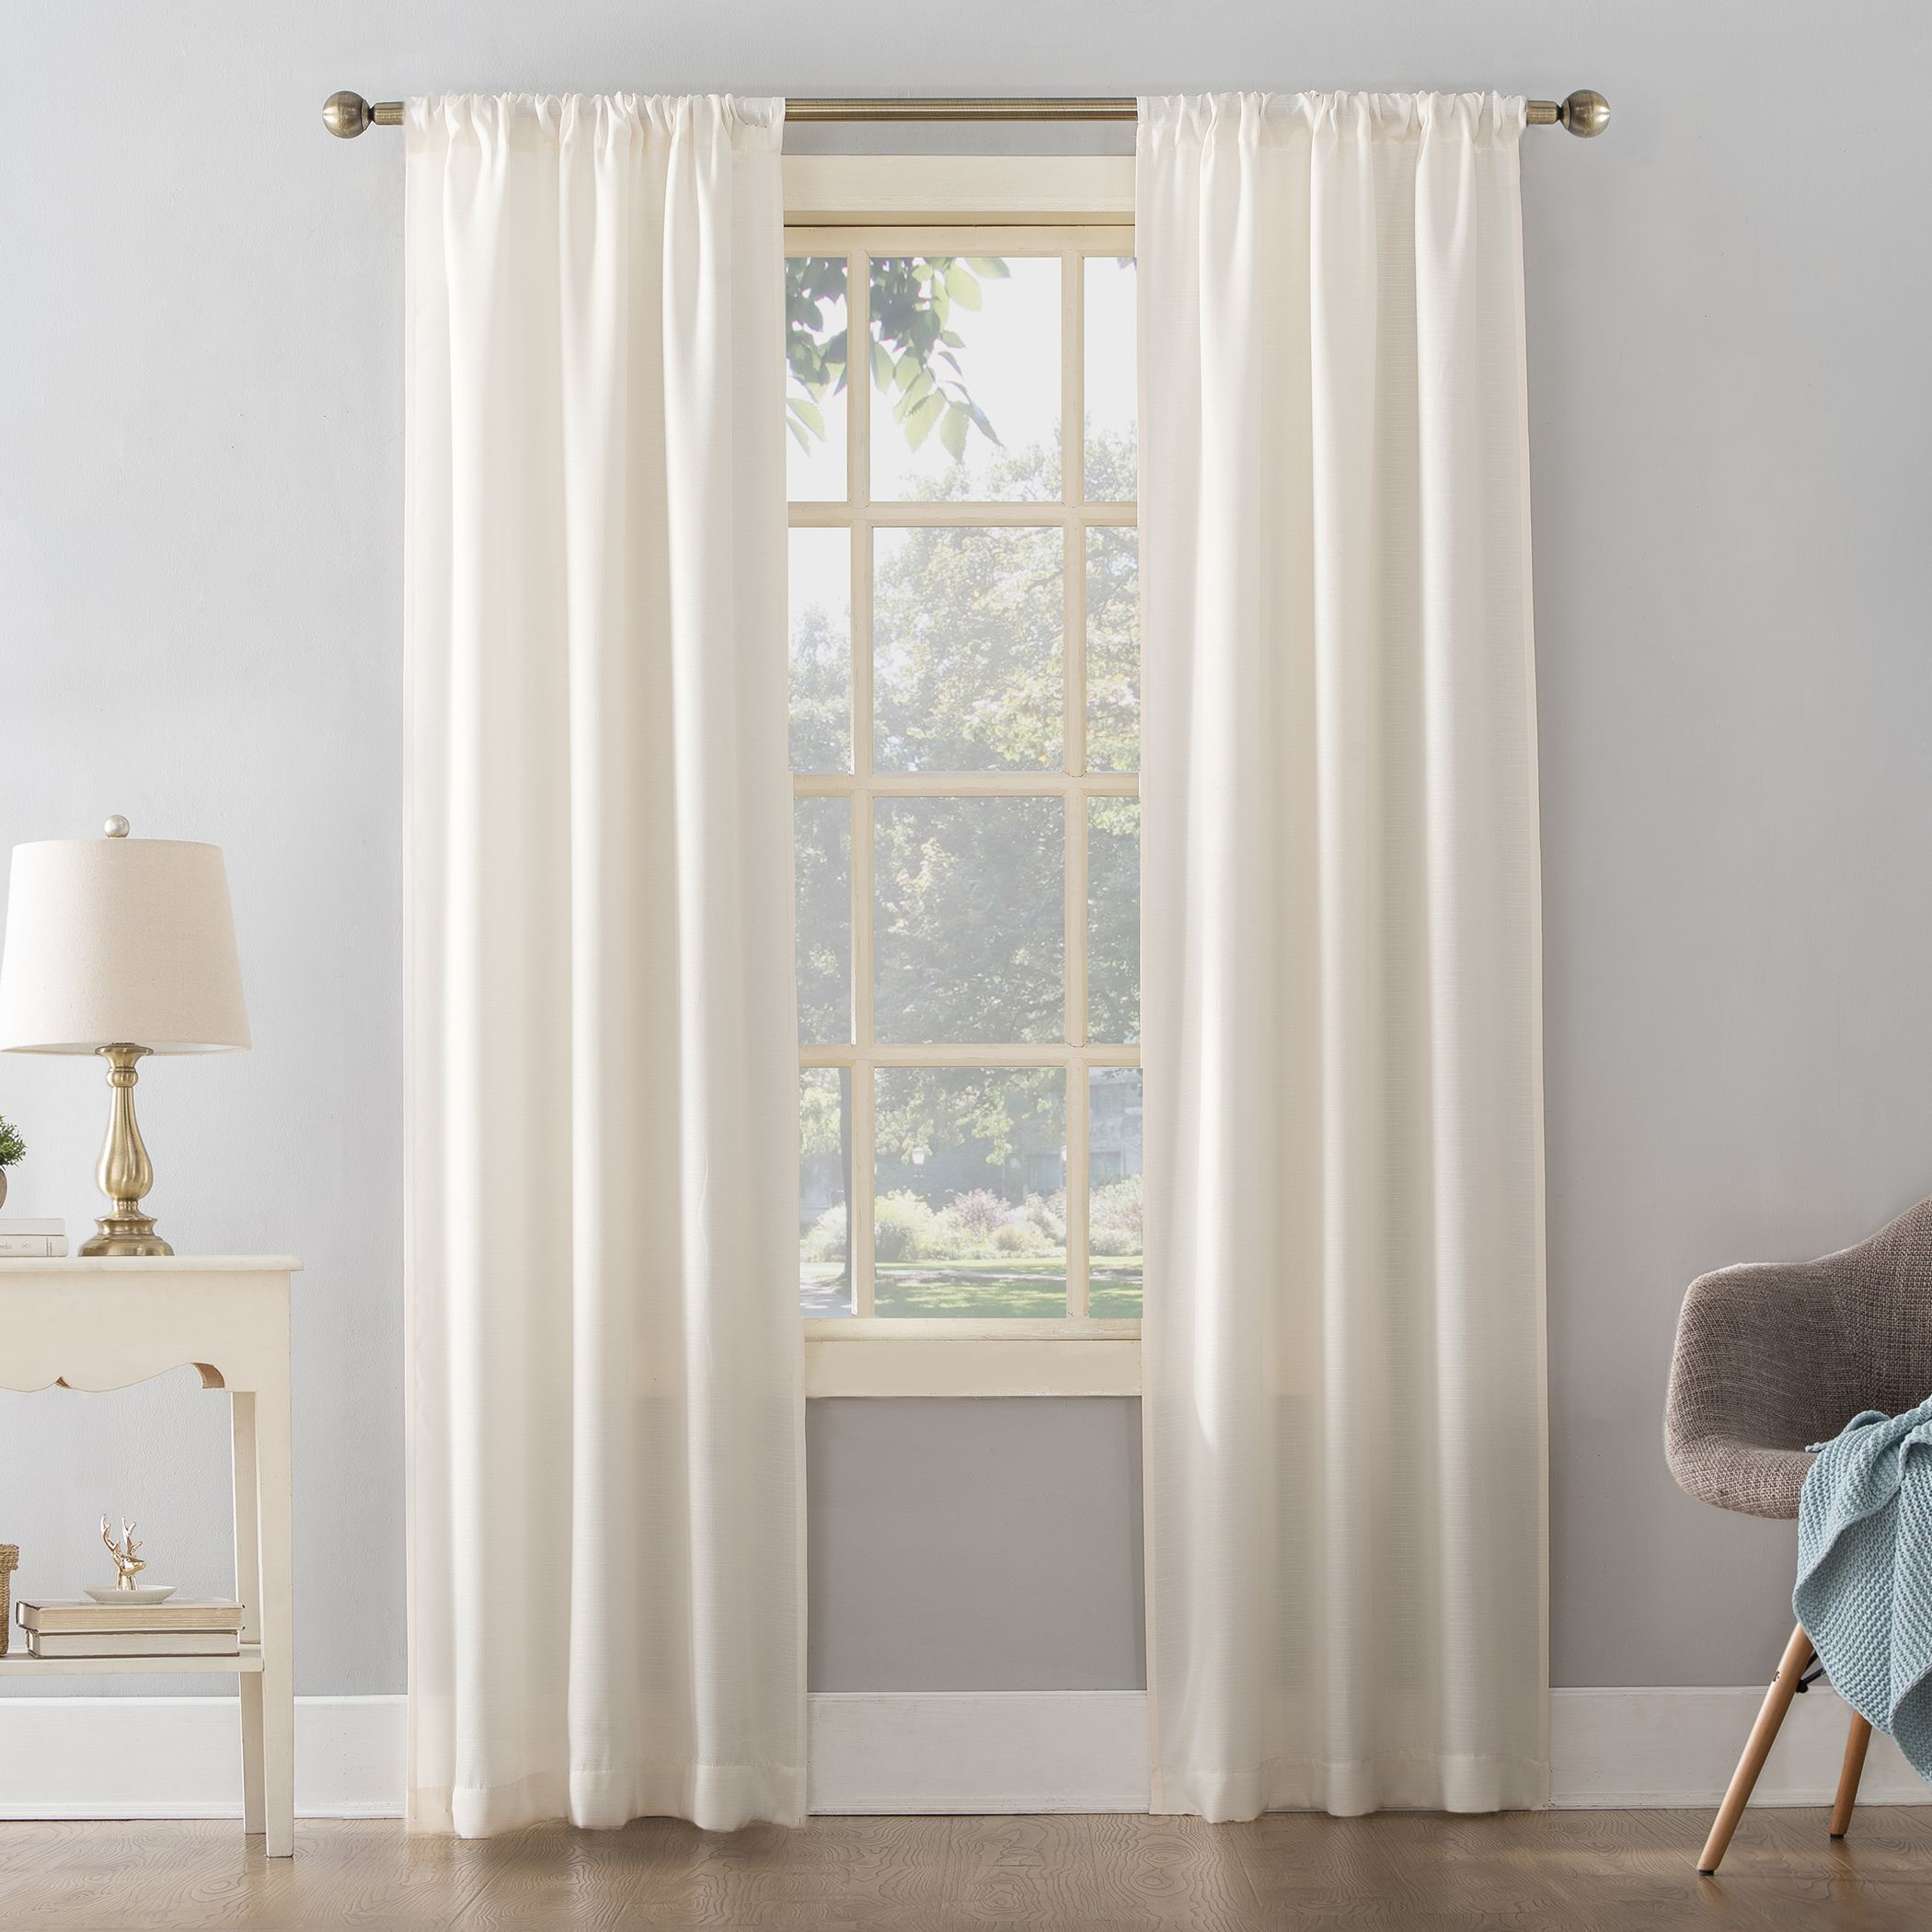 Pin By Julie Morse On Curtains In 2021 Solid Curtains Curtain Single Panel Easy Hanging Curtains